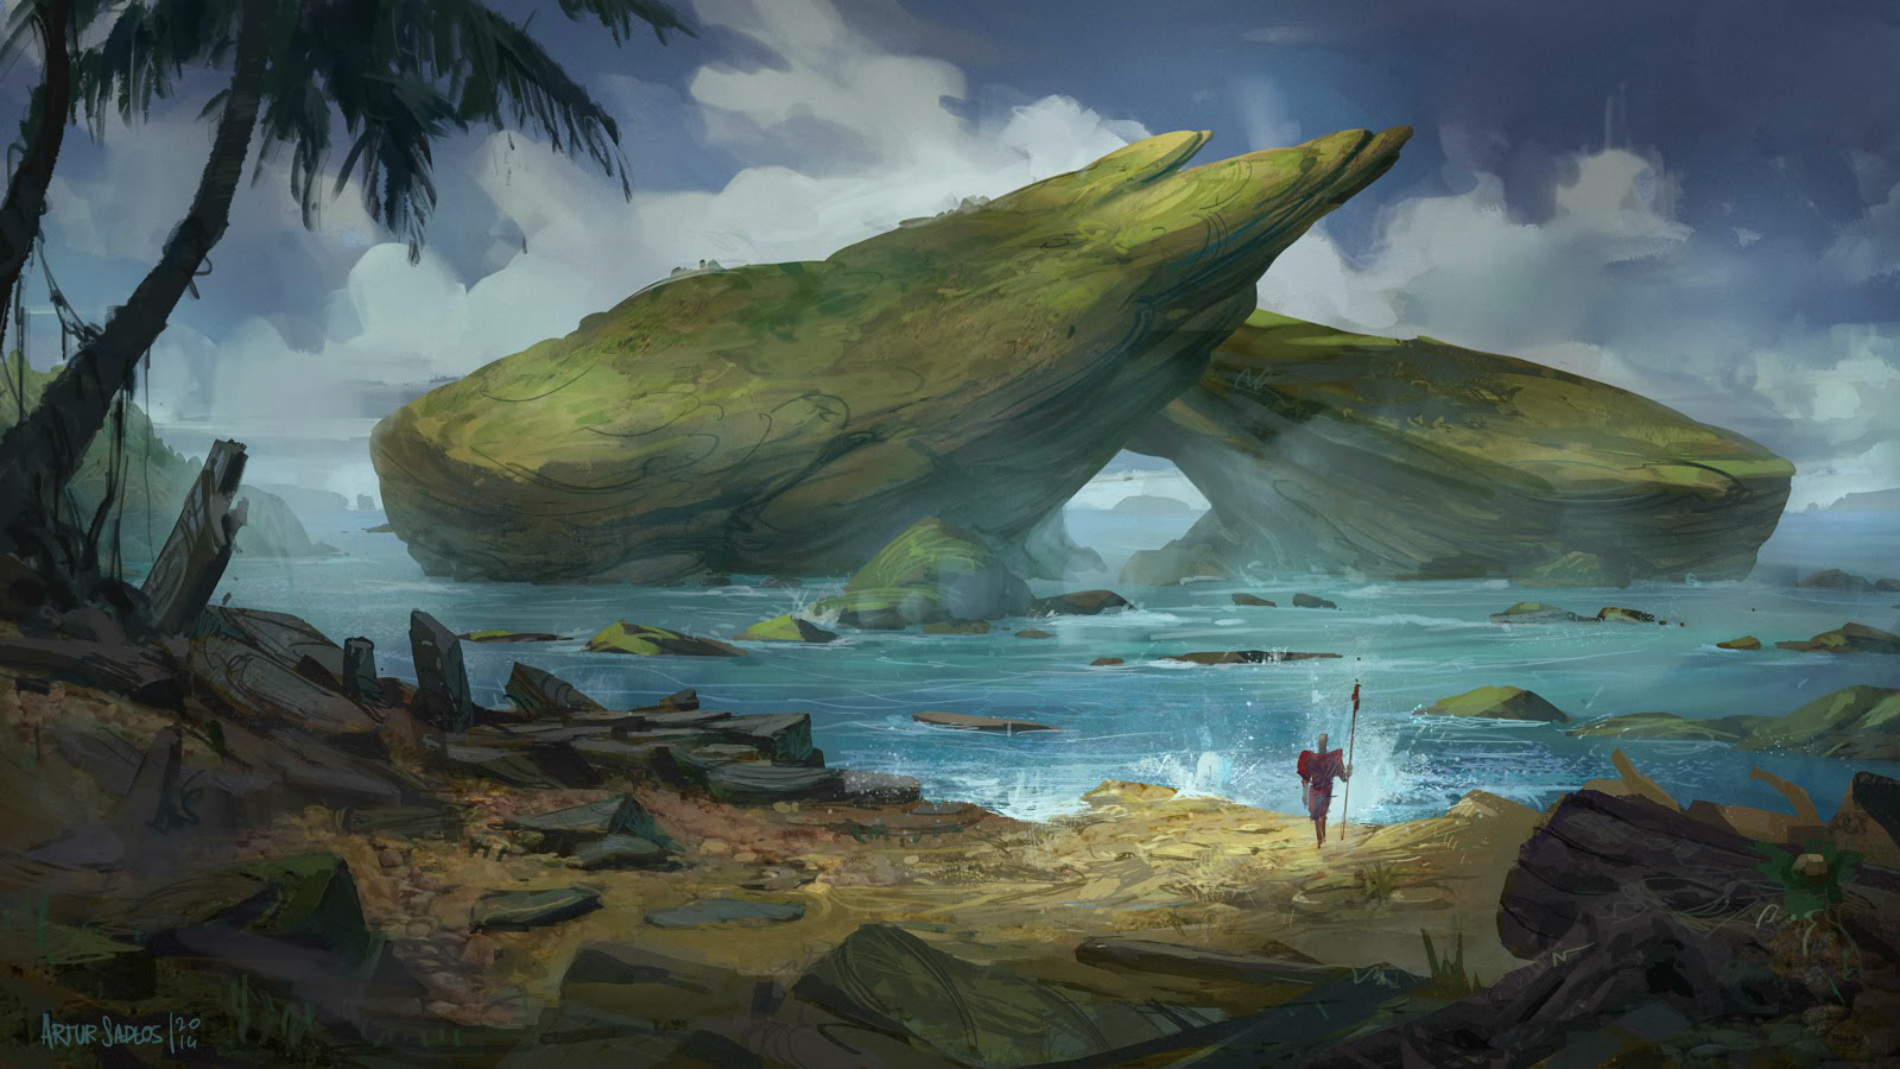 A Journey into Artur Sadlos' Fantasy Lands